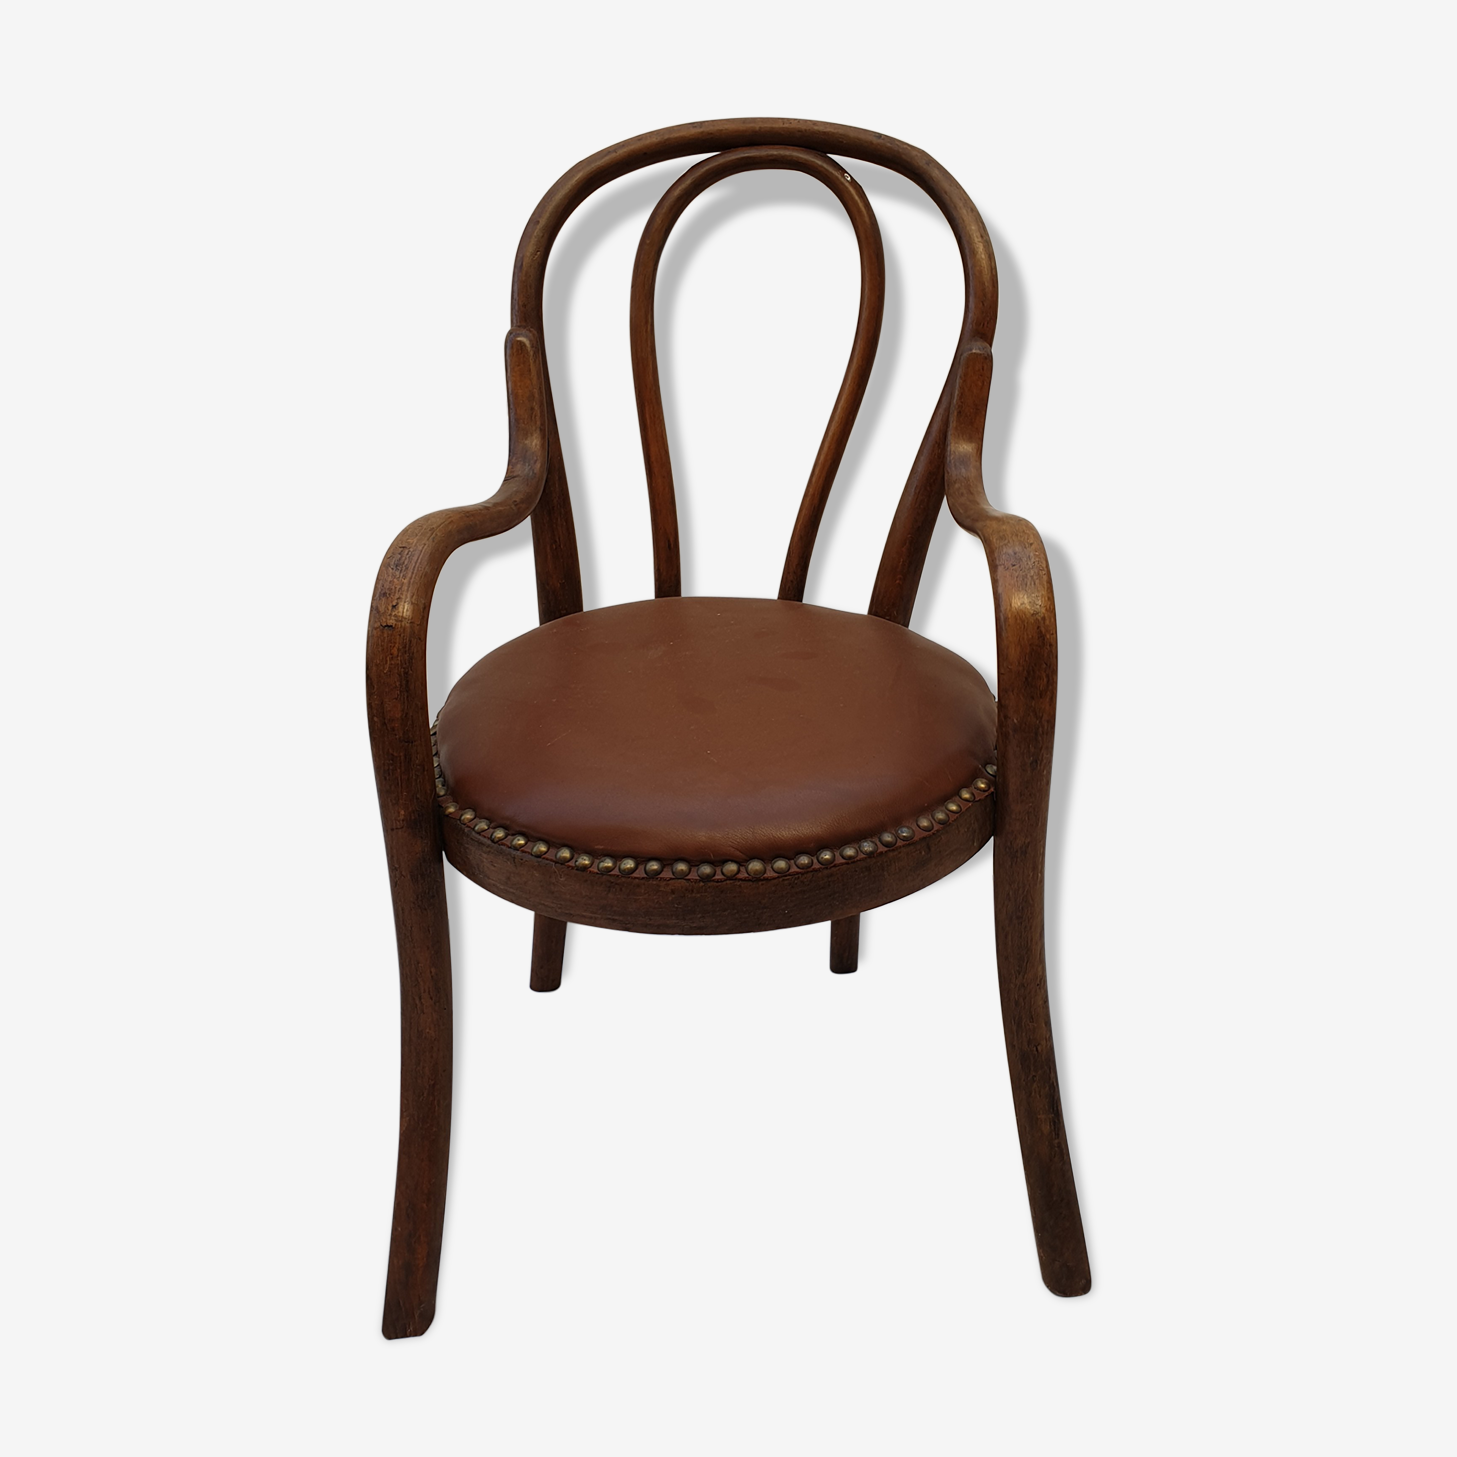 Armchair Thonet for a child